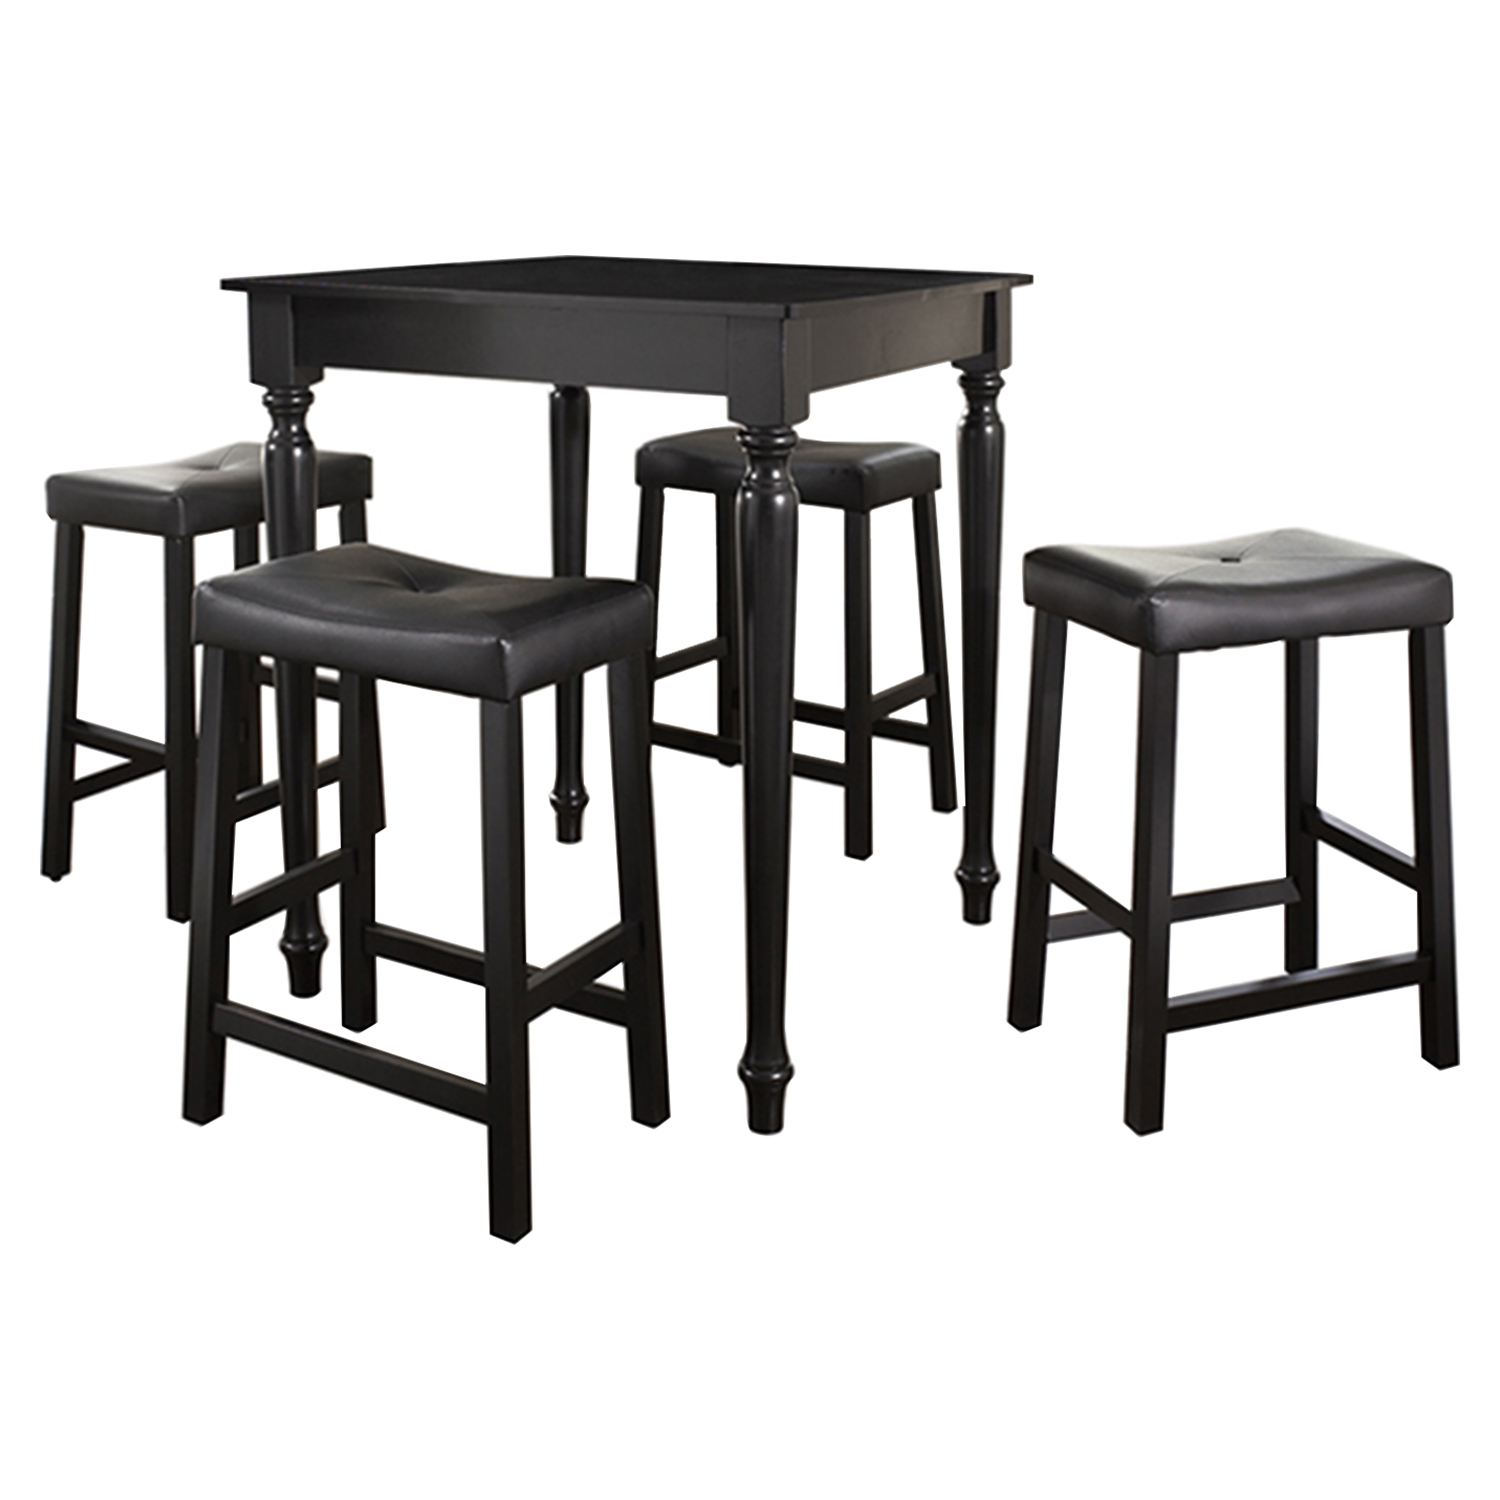 5-Piece Pub Dining Set - Turned Table Legs, Saddle Stools, Black - CROS-KD520012BK